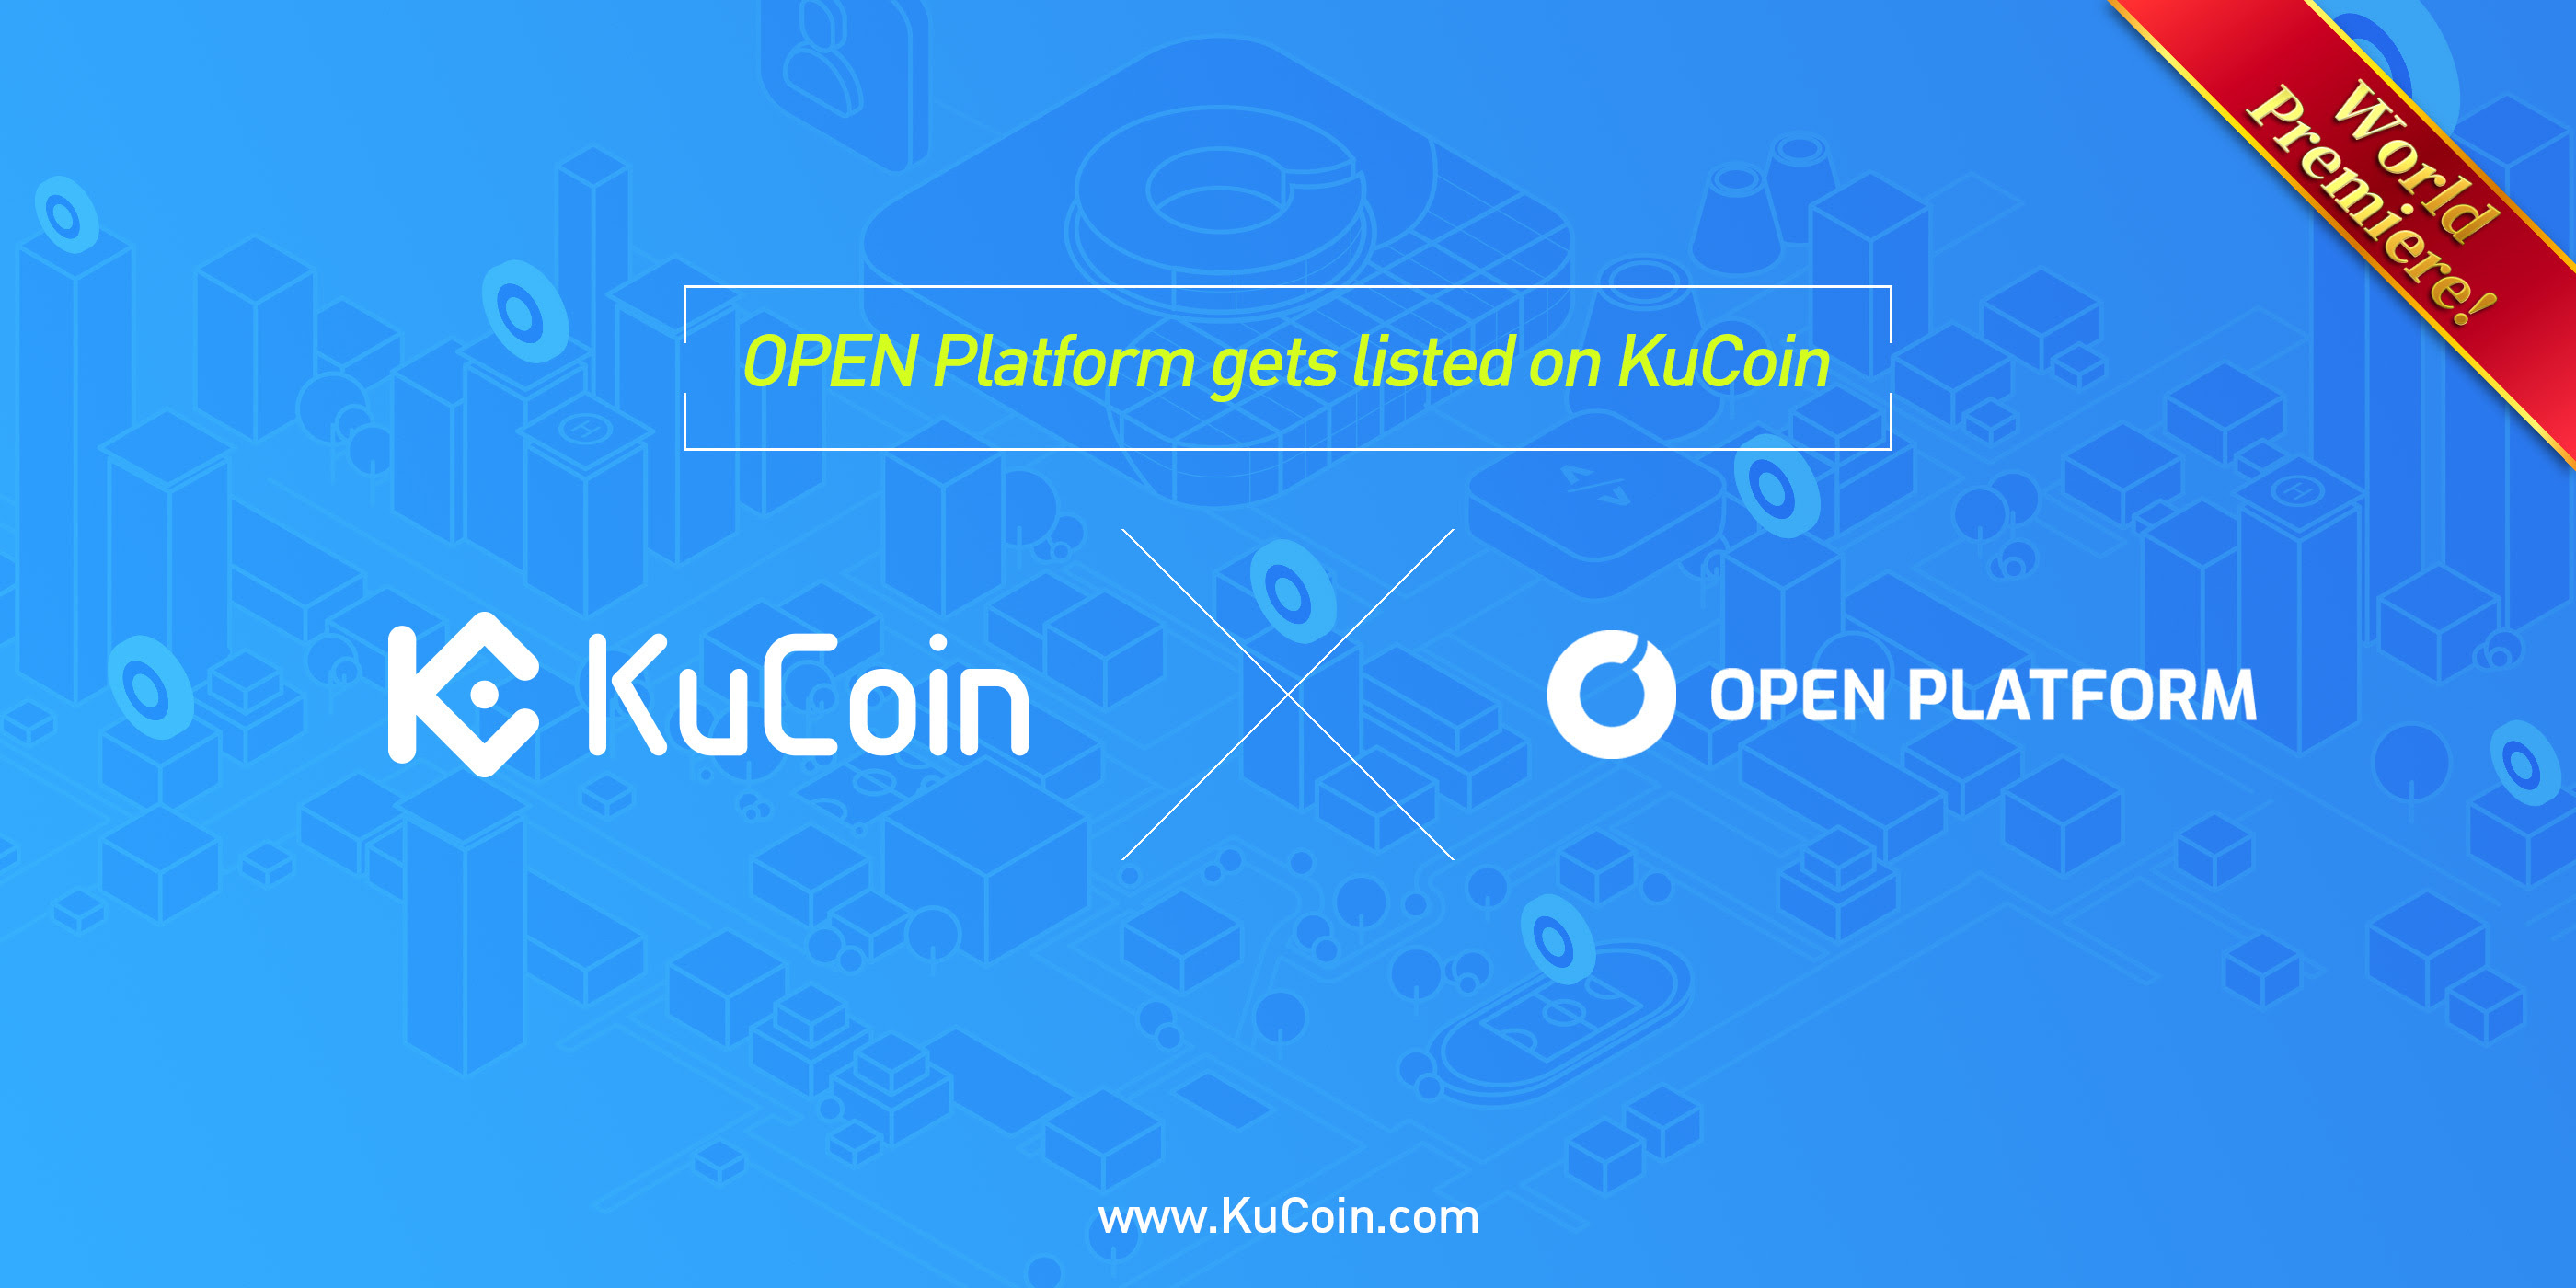 OPEN Platform (OPEN) Gets Listed On KuCoin